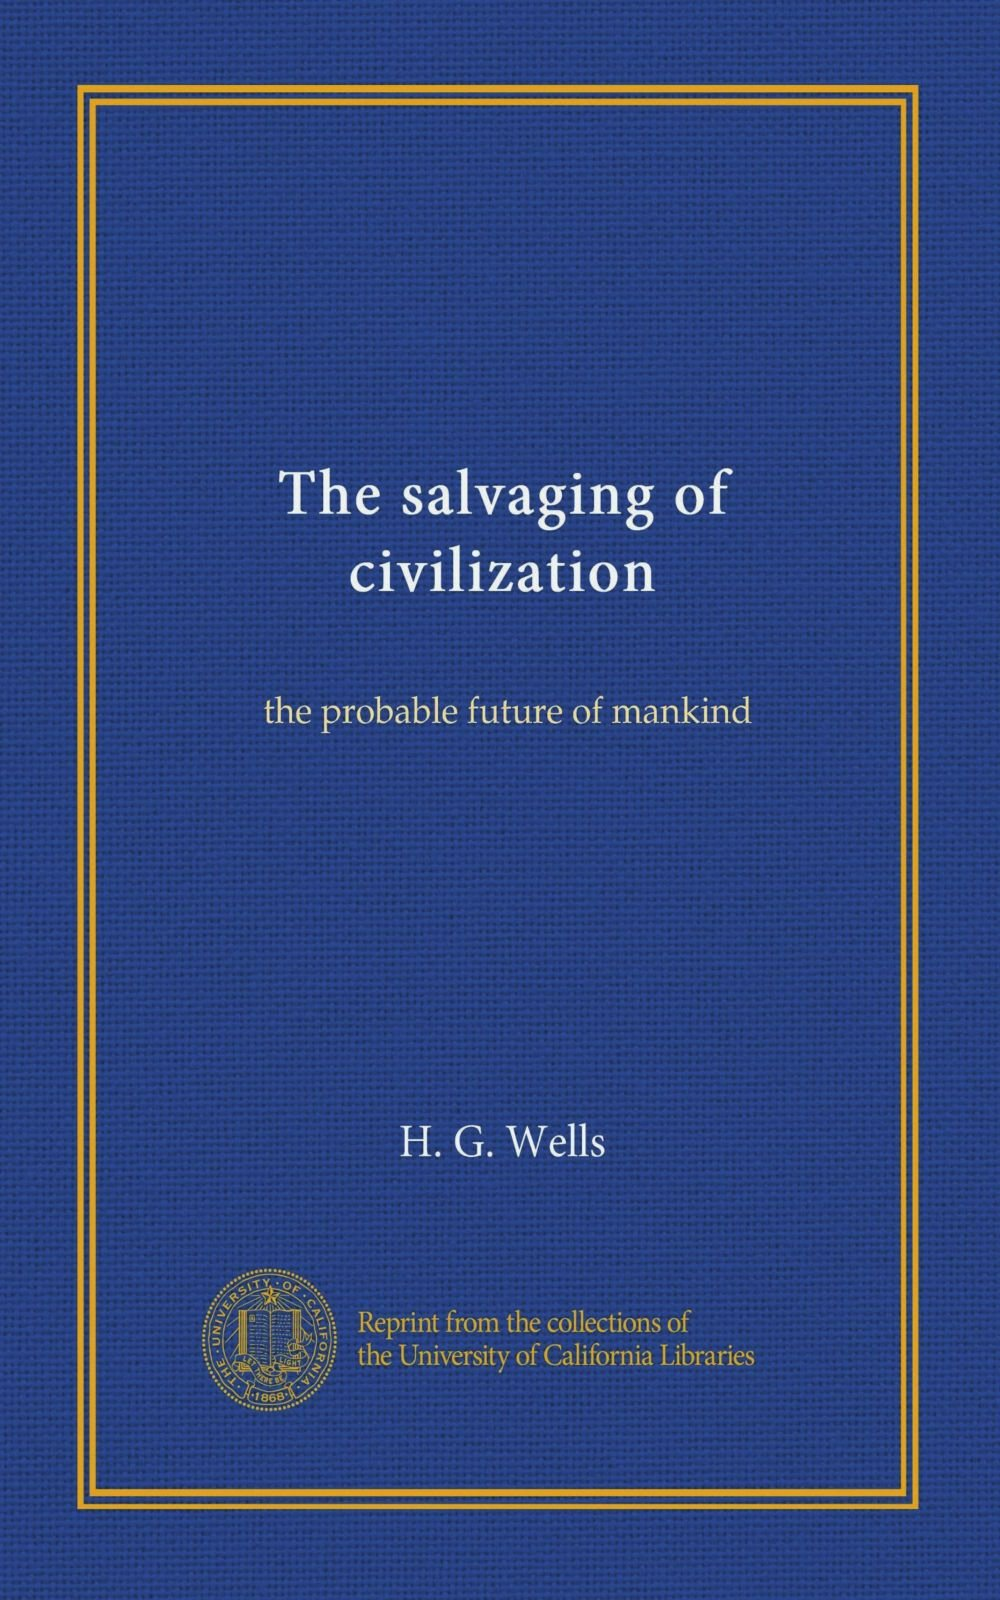 Download The salvaging of civilization: the probable future of mankind PDF